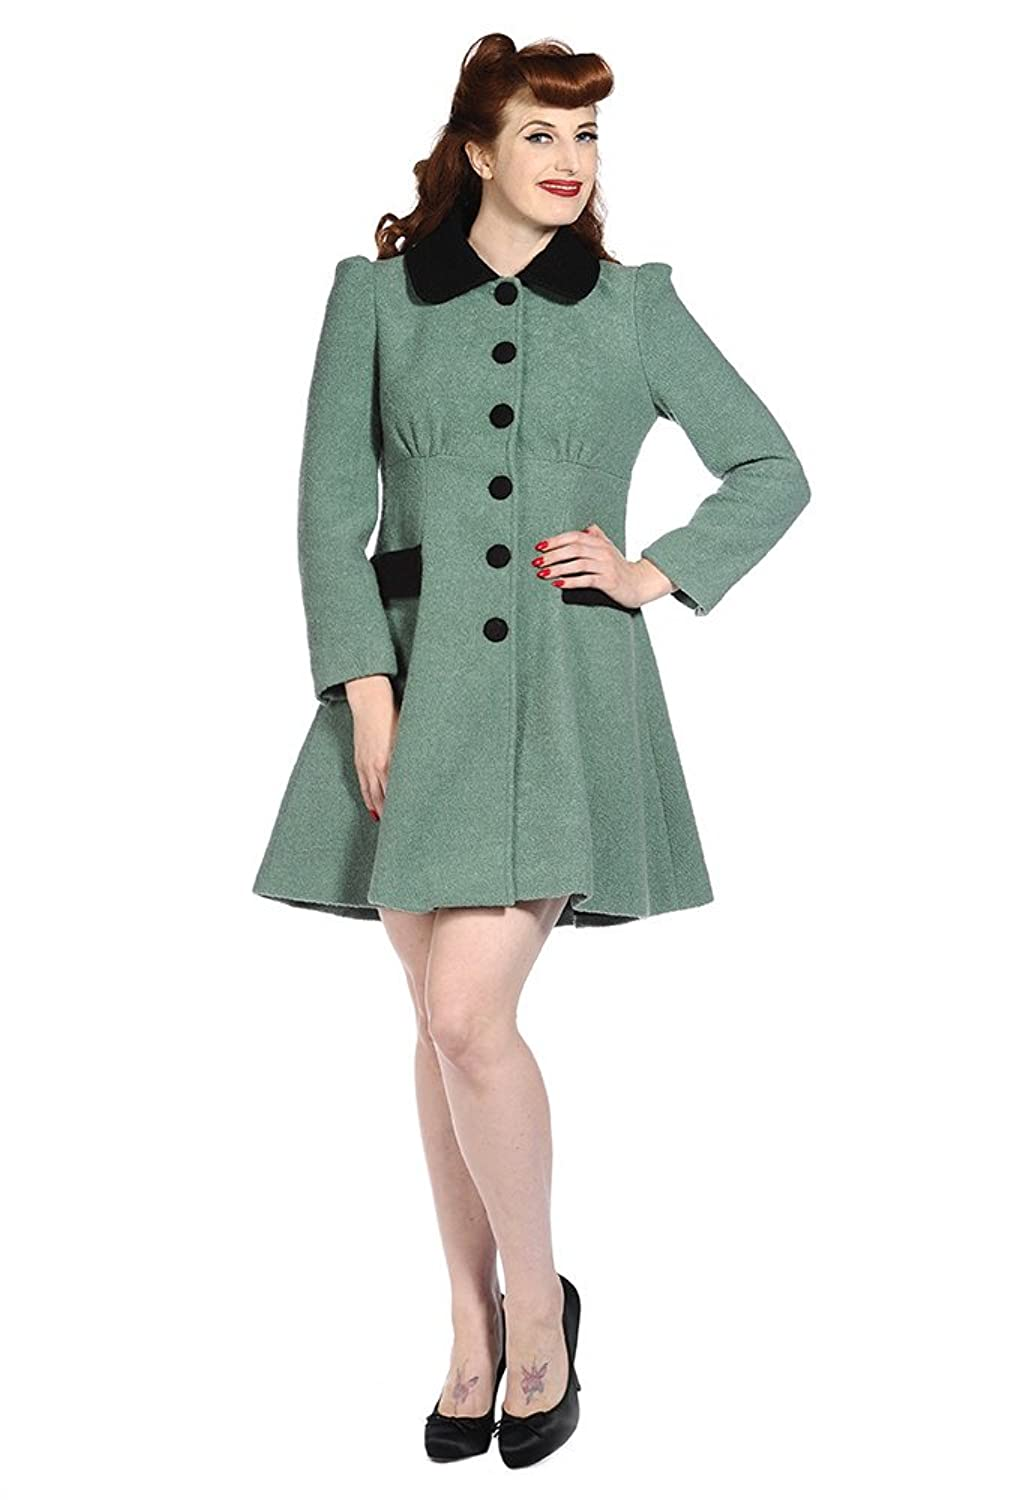 Retro Vintage Style Coats, Jackets, Fur Stoles Banned Vintage Coat £88.99 AT vintagedancer.com